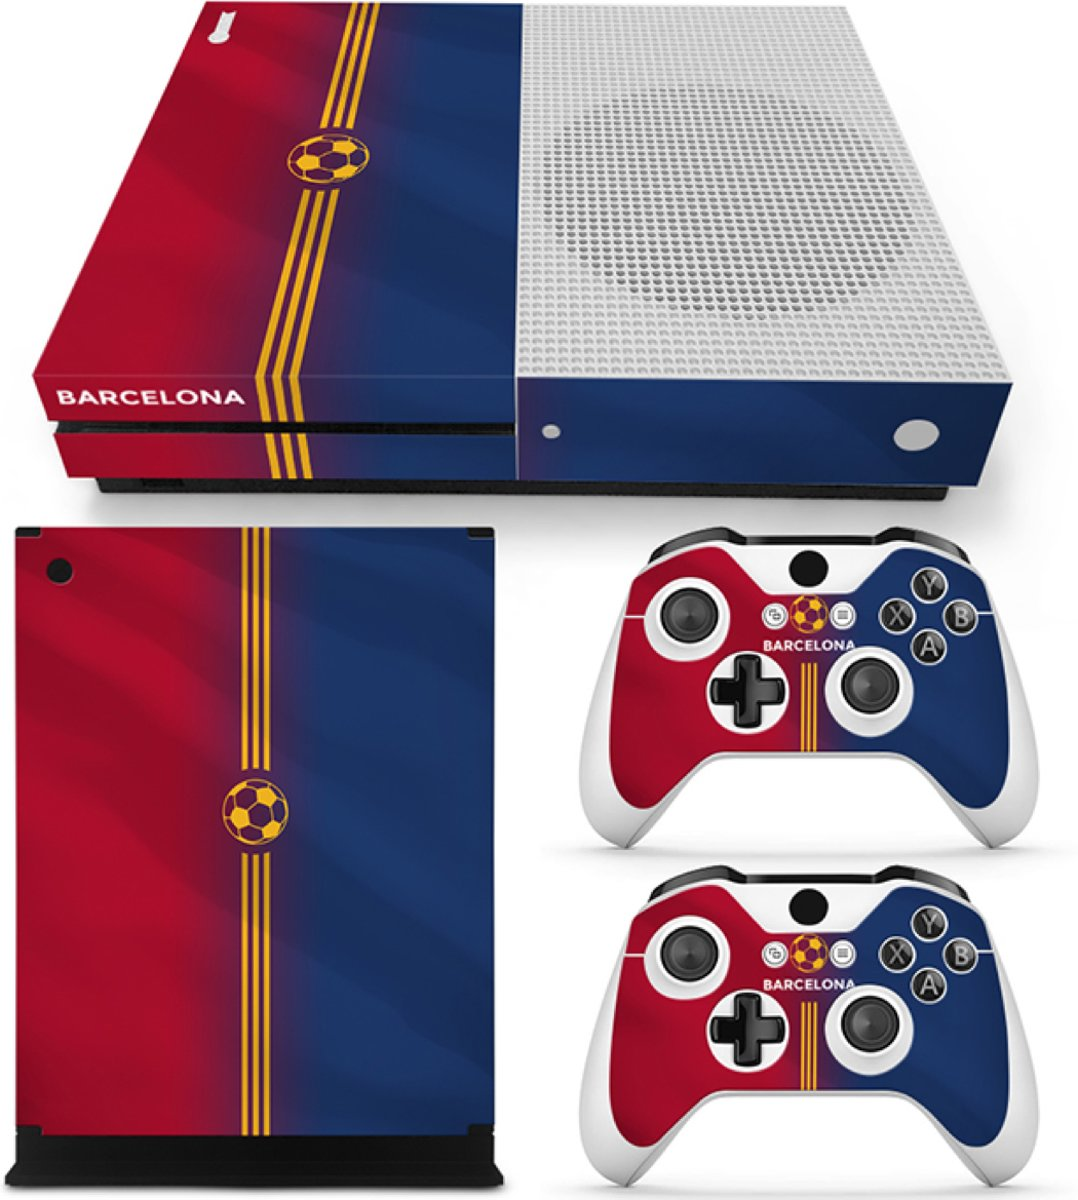 Barcelona - Xbox One S Console Skins Stickers